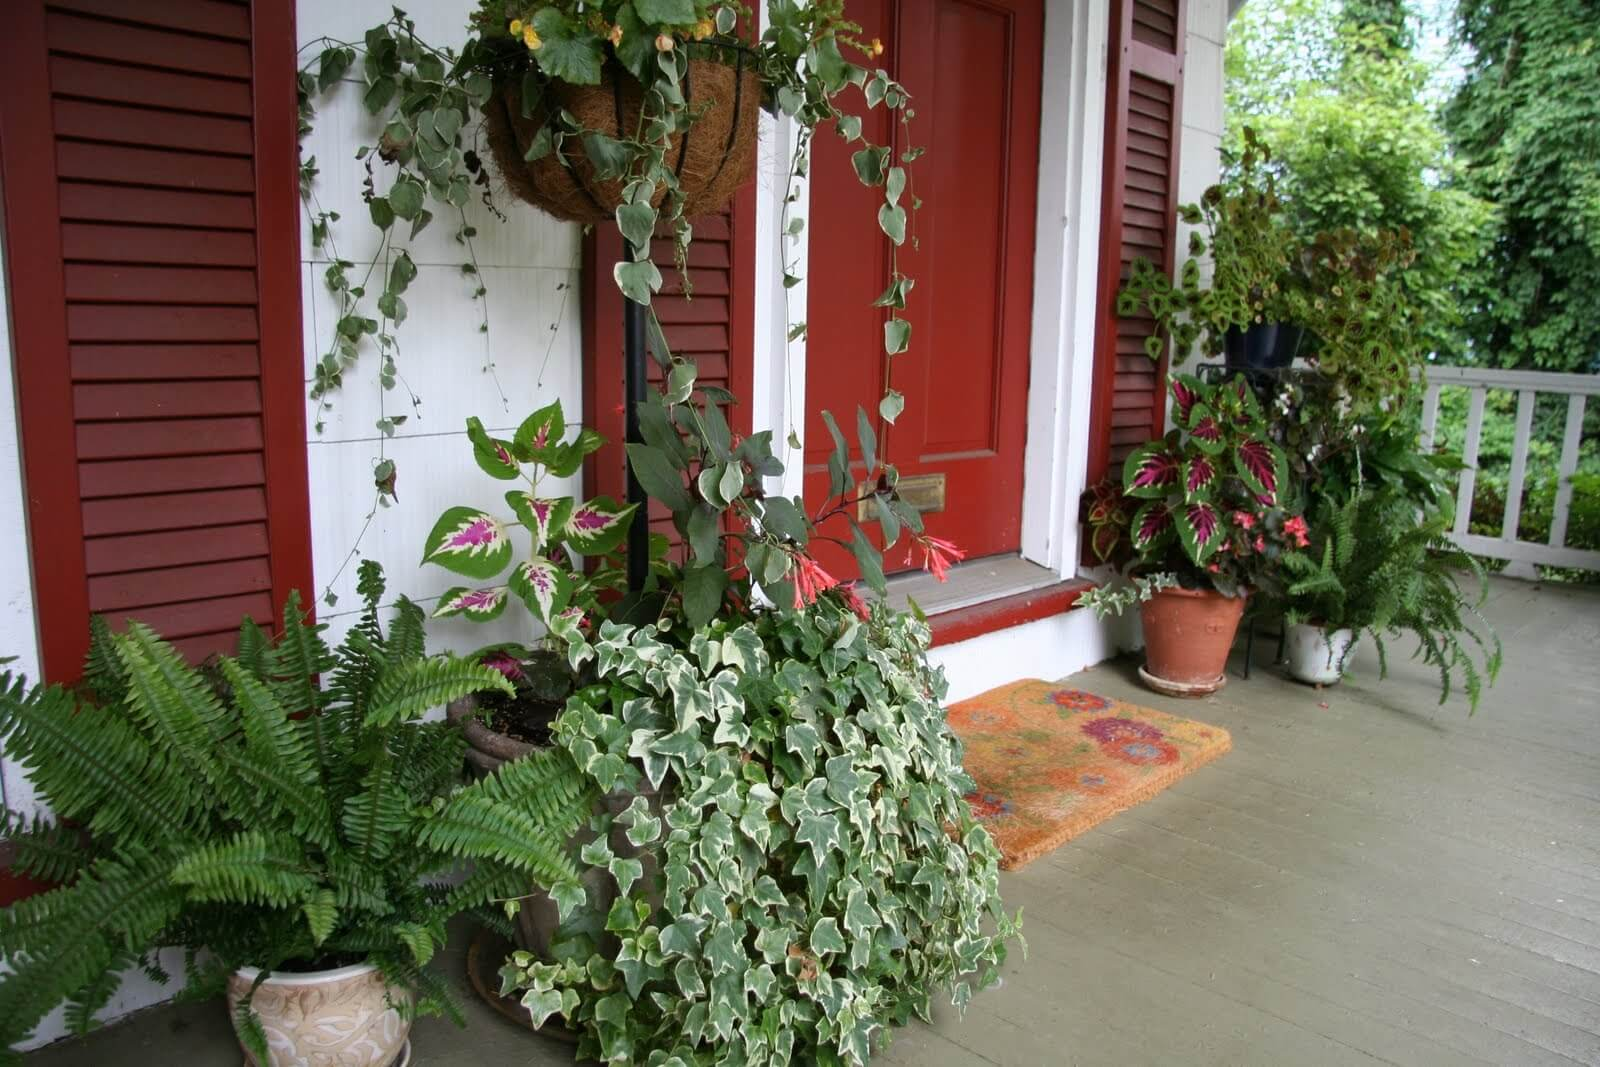 Even potted plants can make a huge difference in tone